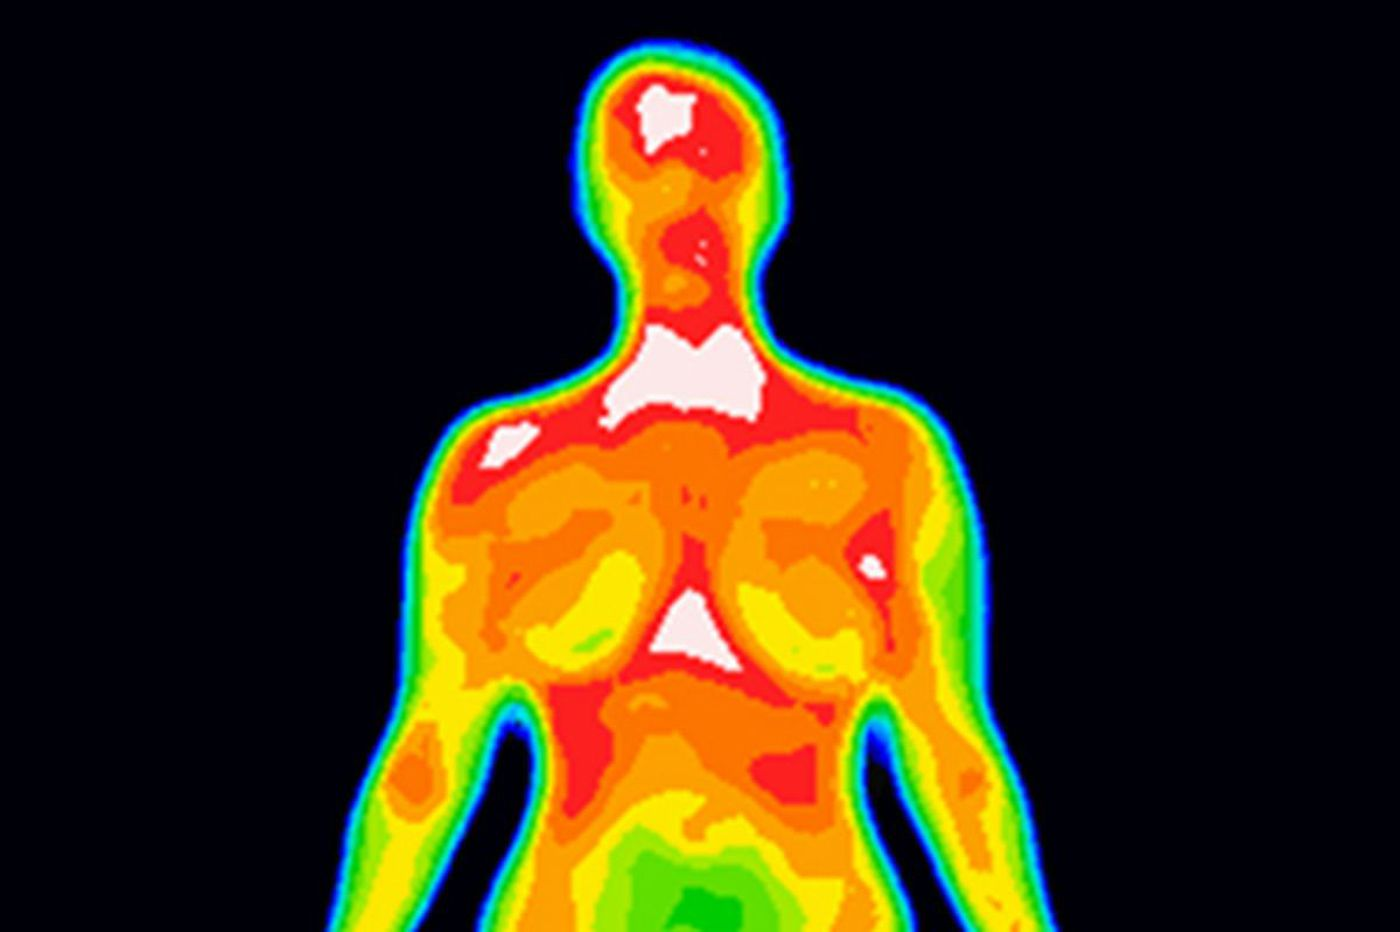 Can painless infrared scans replace mammograms? Not at all, says FDA